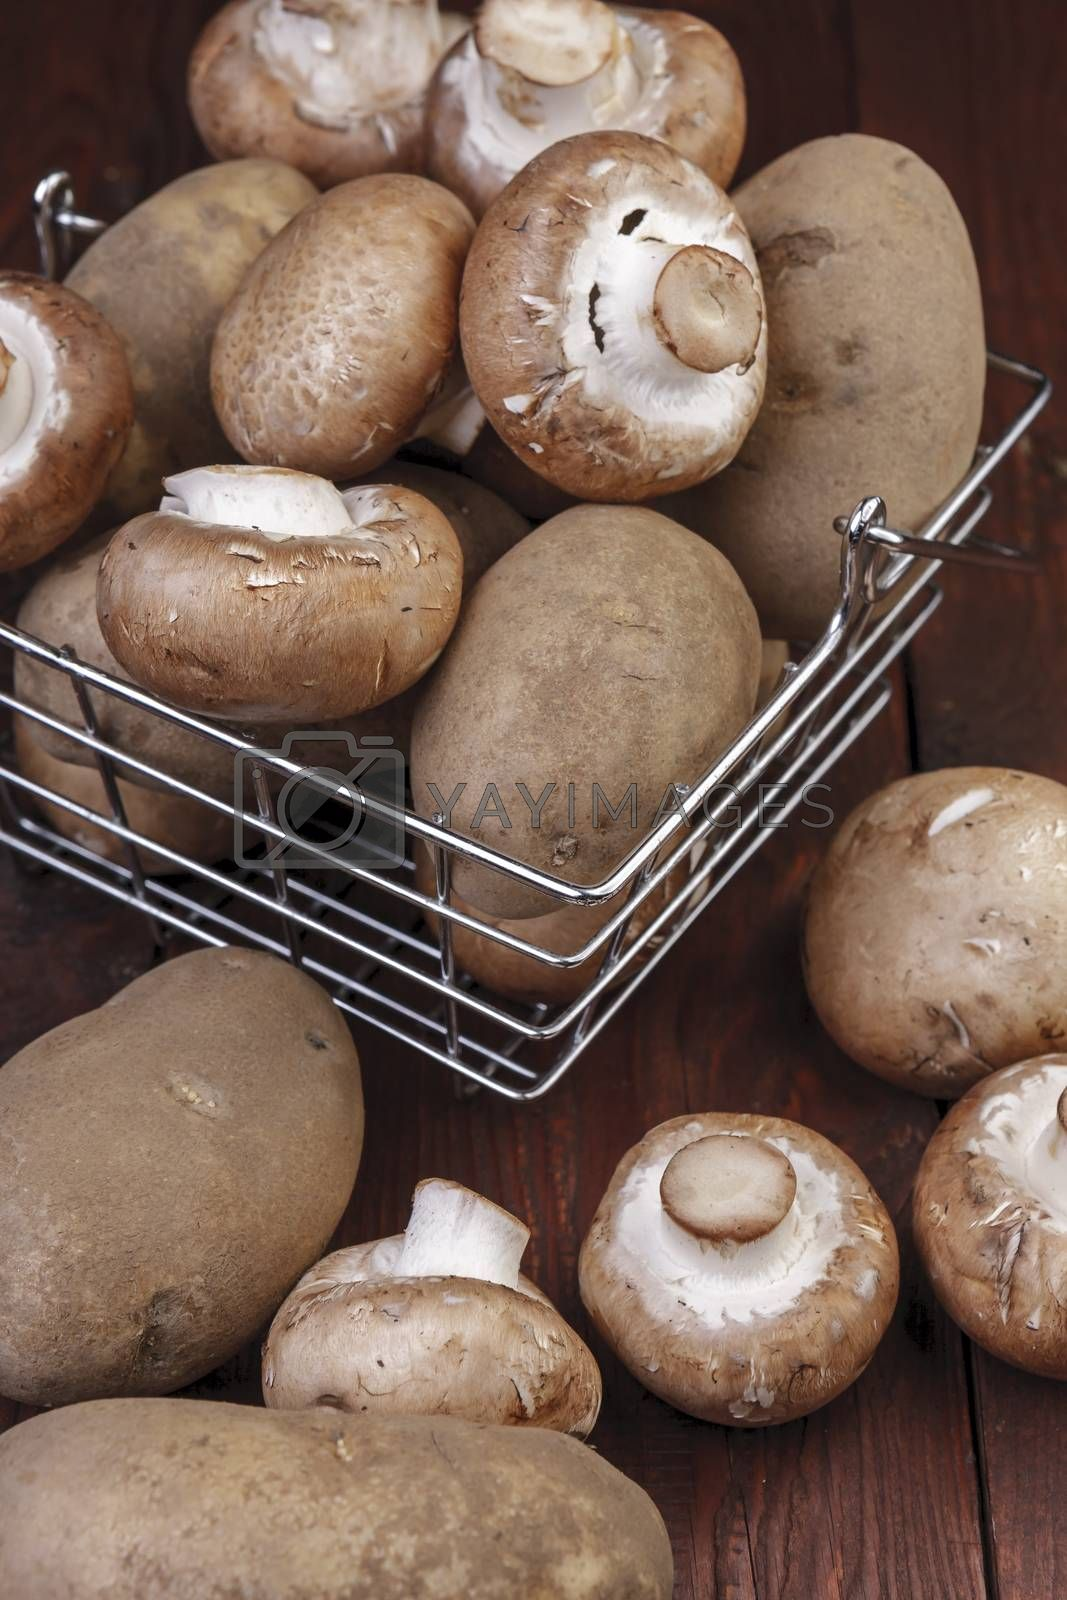 A metal wire basket filled with potatoes and mushrooms on a wooden table.